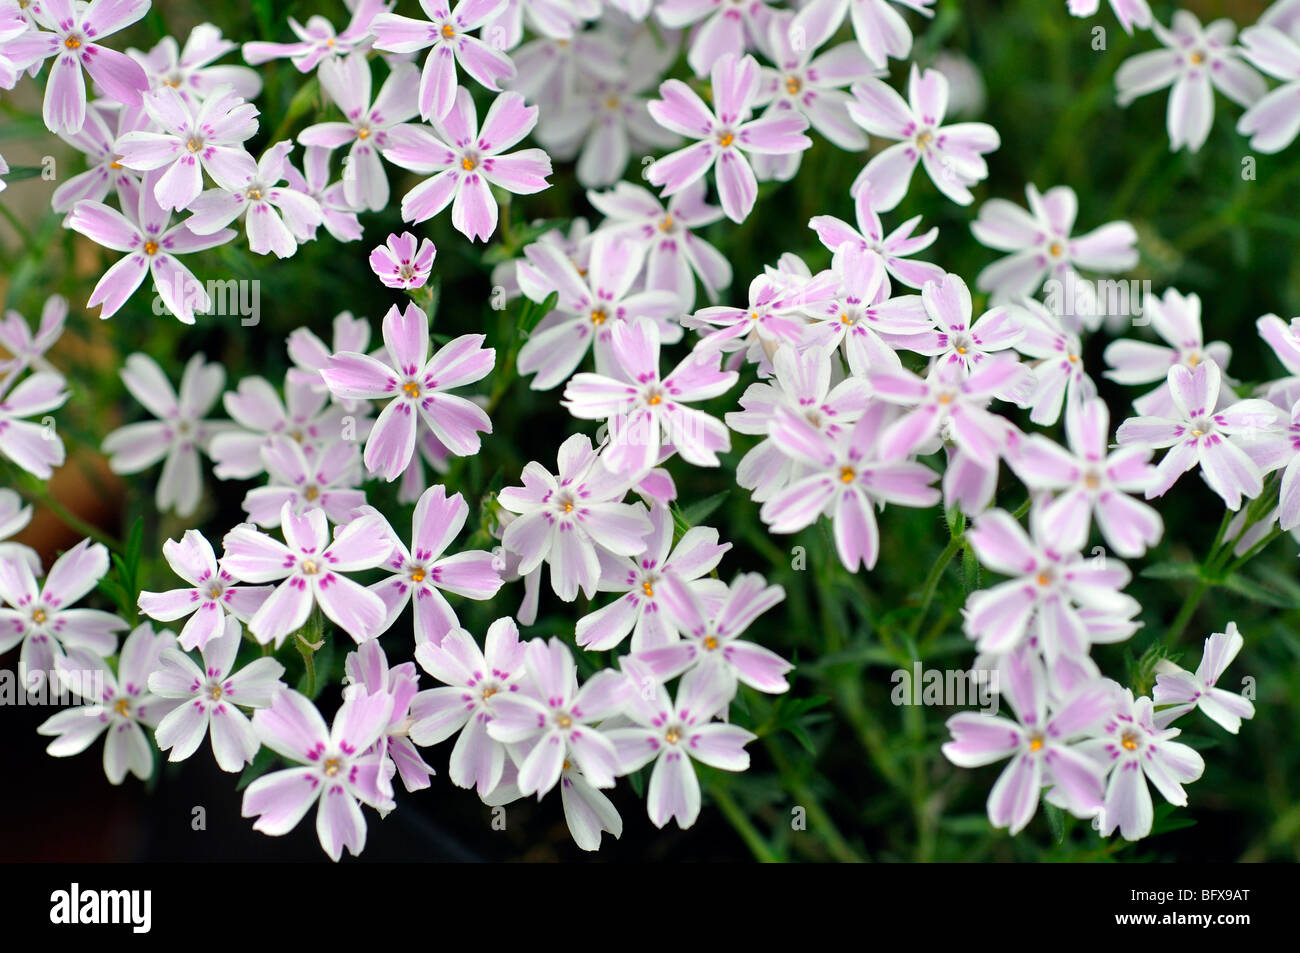 Tiny Pink And White Flowers Stock Photo 27008320 Alamy